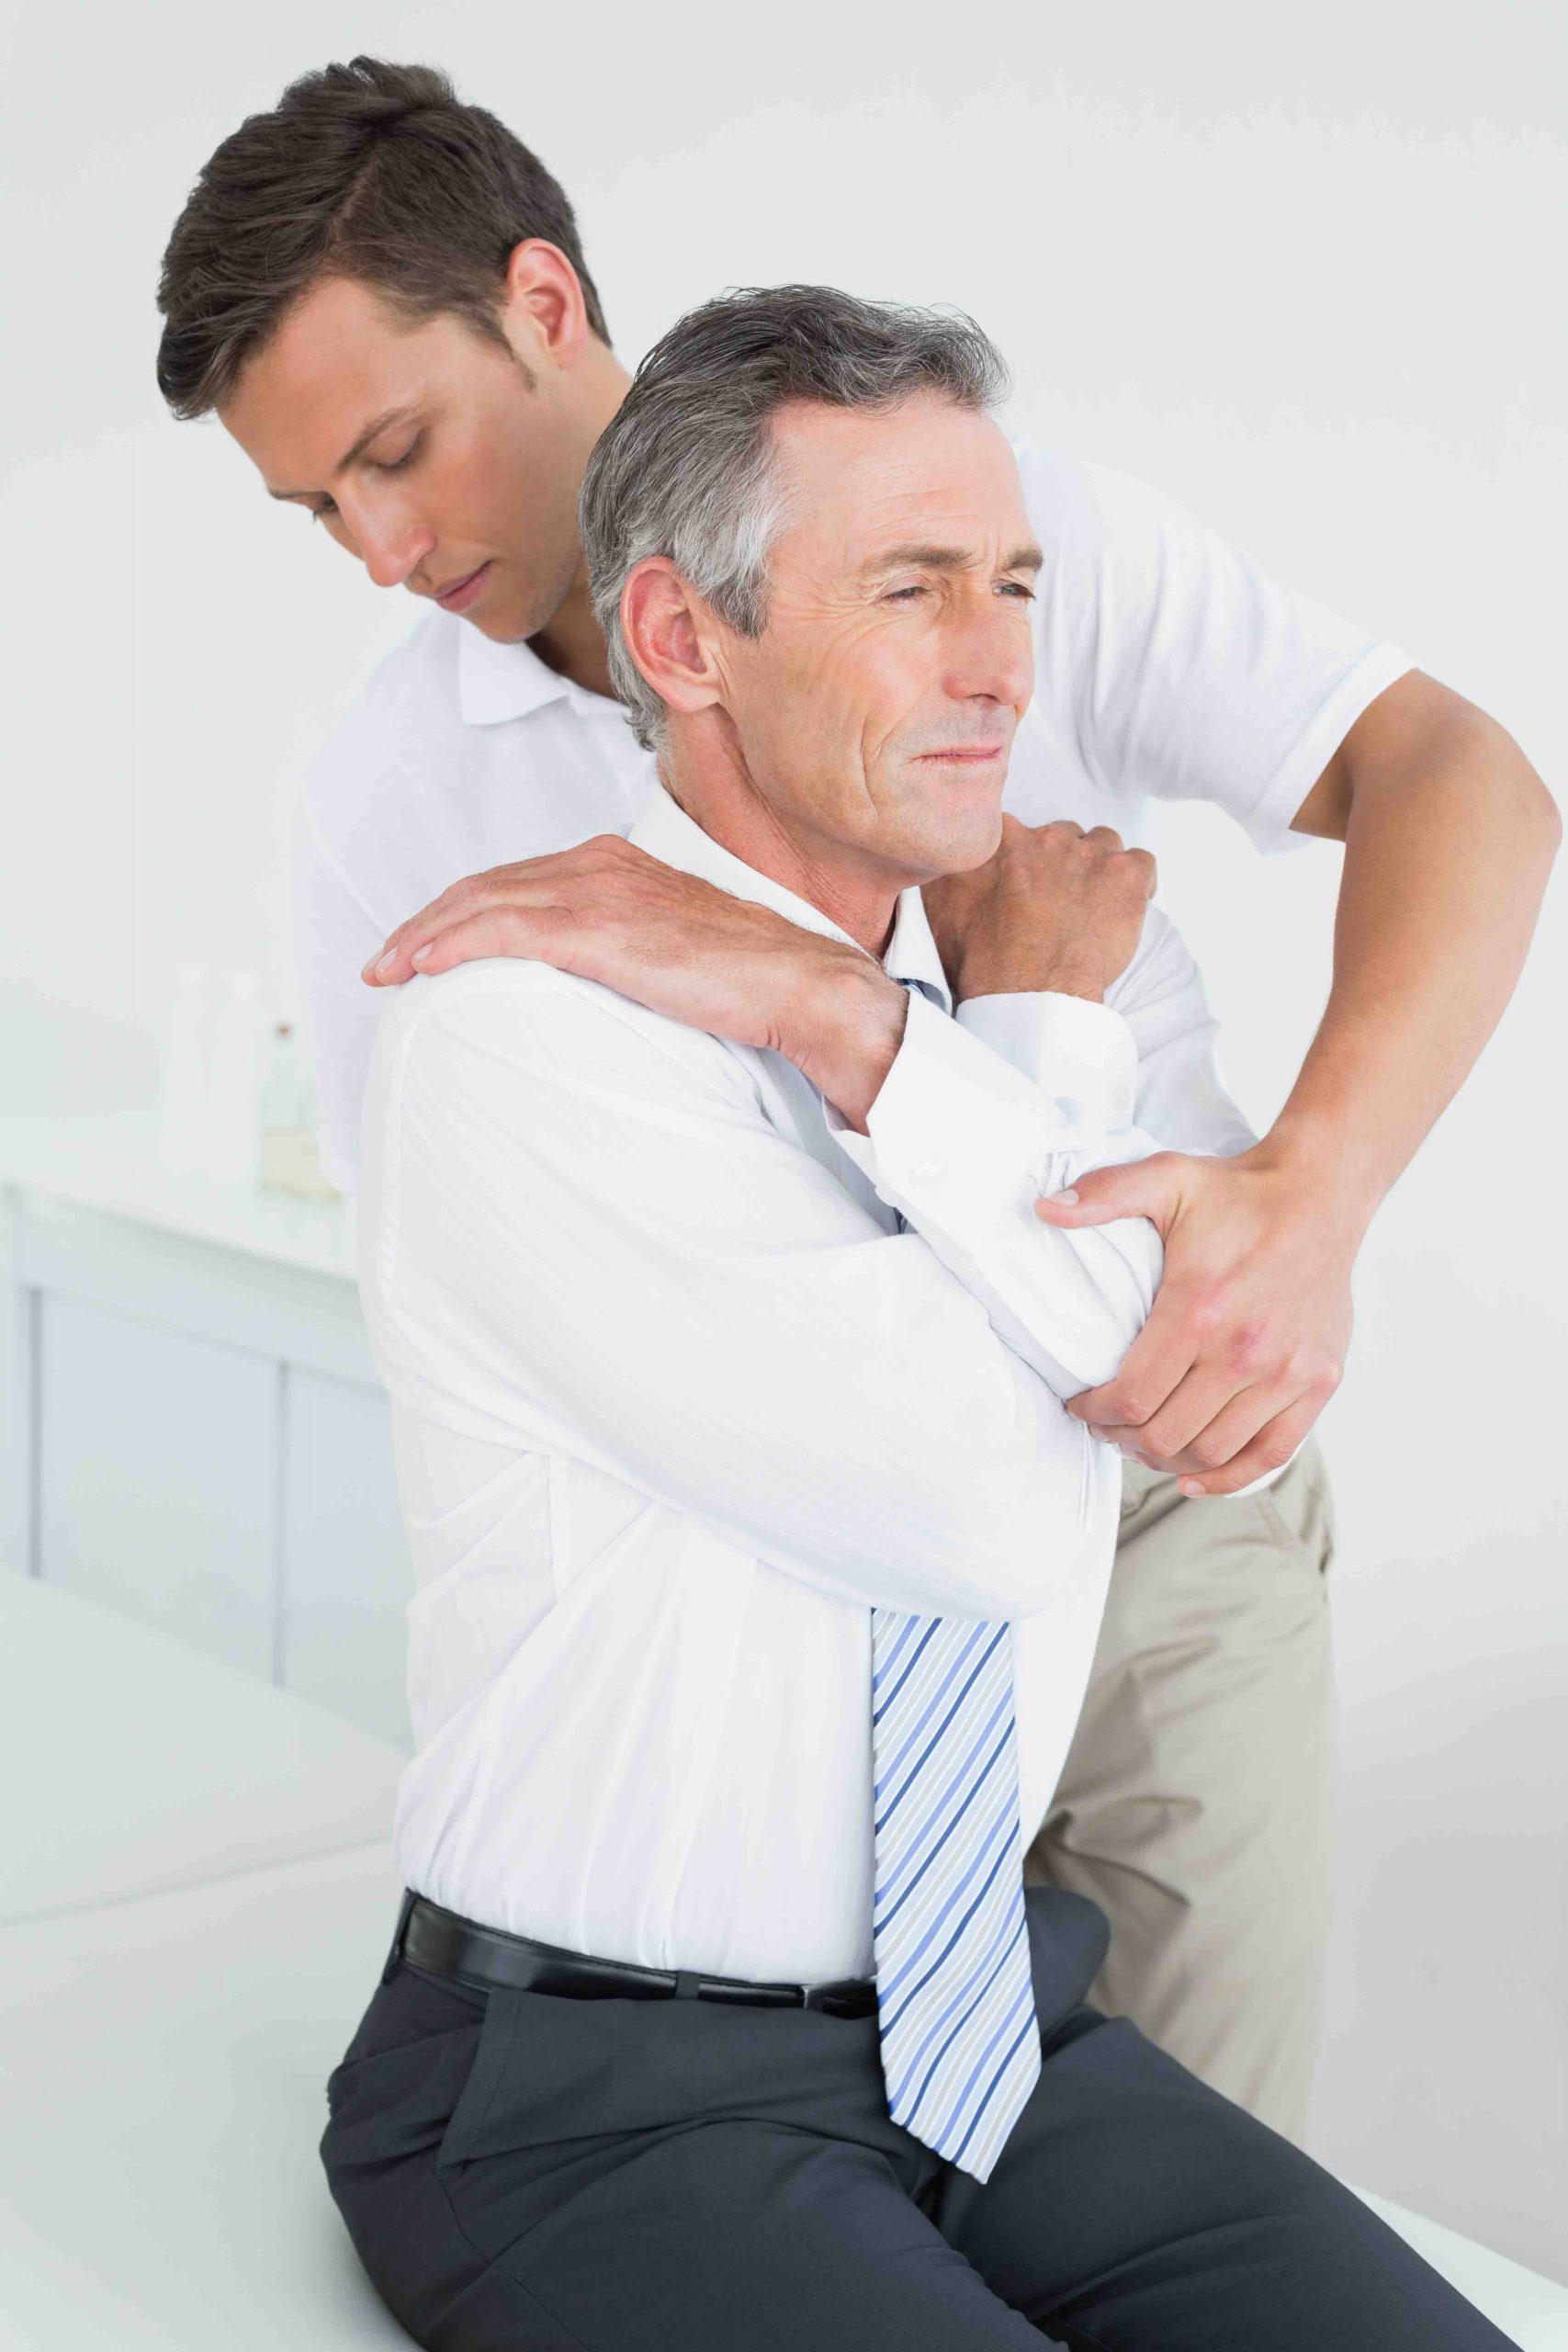 Image of chiropractic techniques